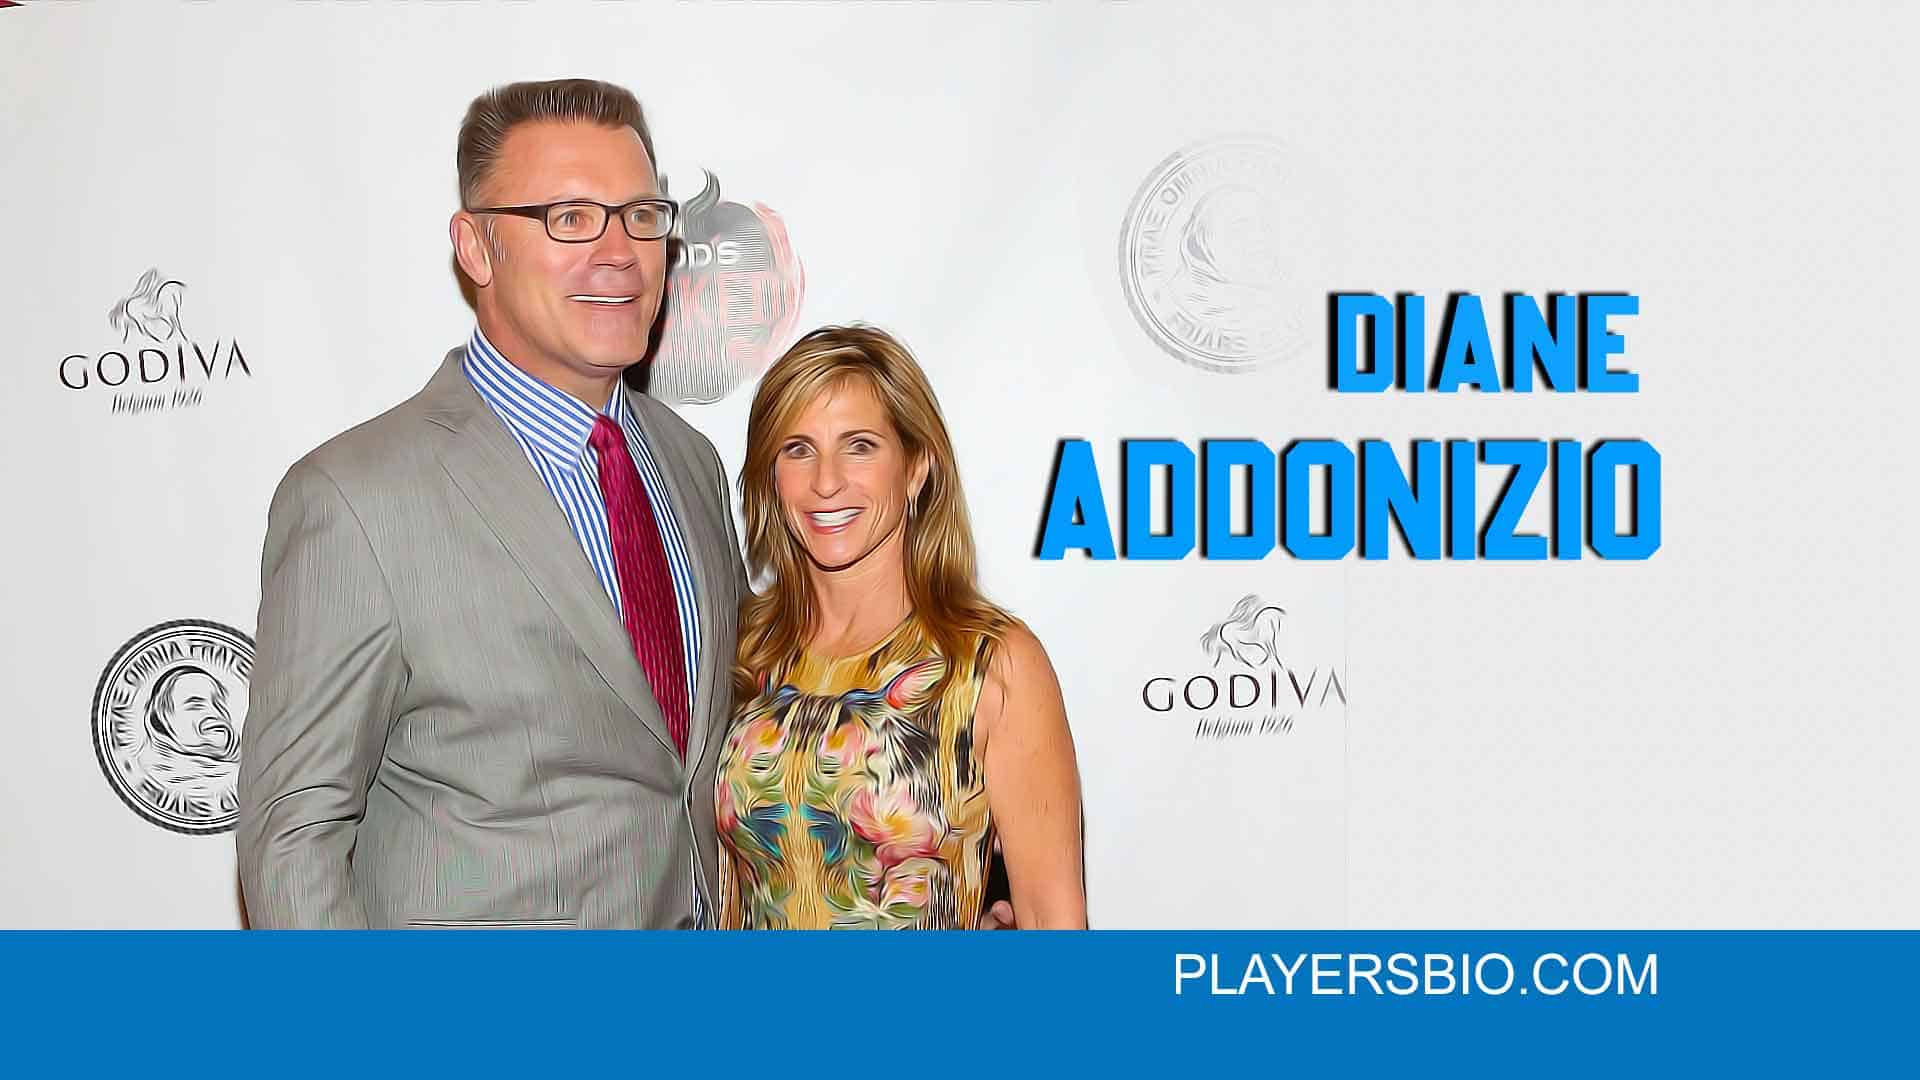 Diane Addonizio Bio Early Life Measurements Education Kids The facts about her husband, net worth, weight, and more! diane addonizio bio early life